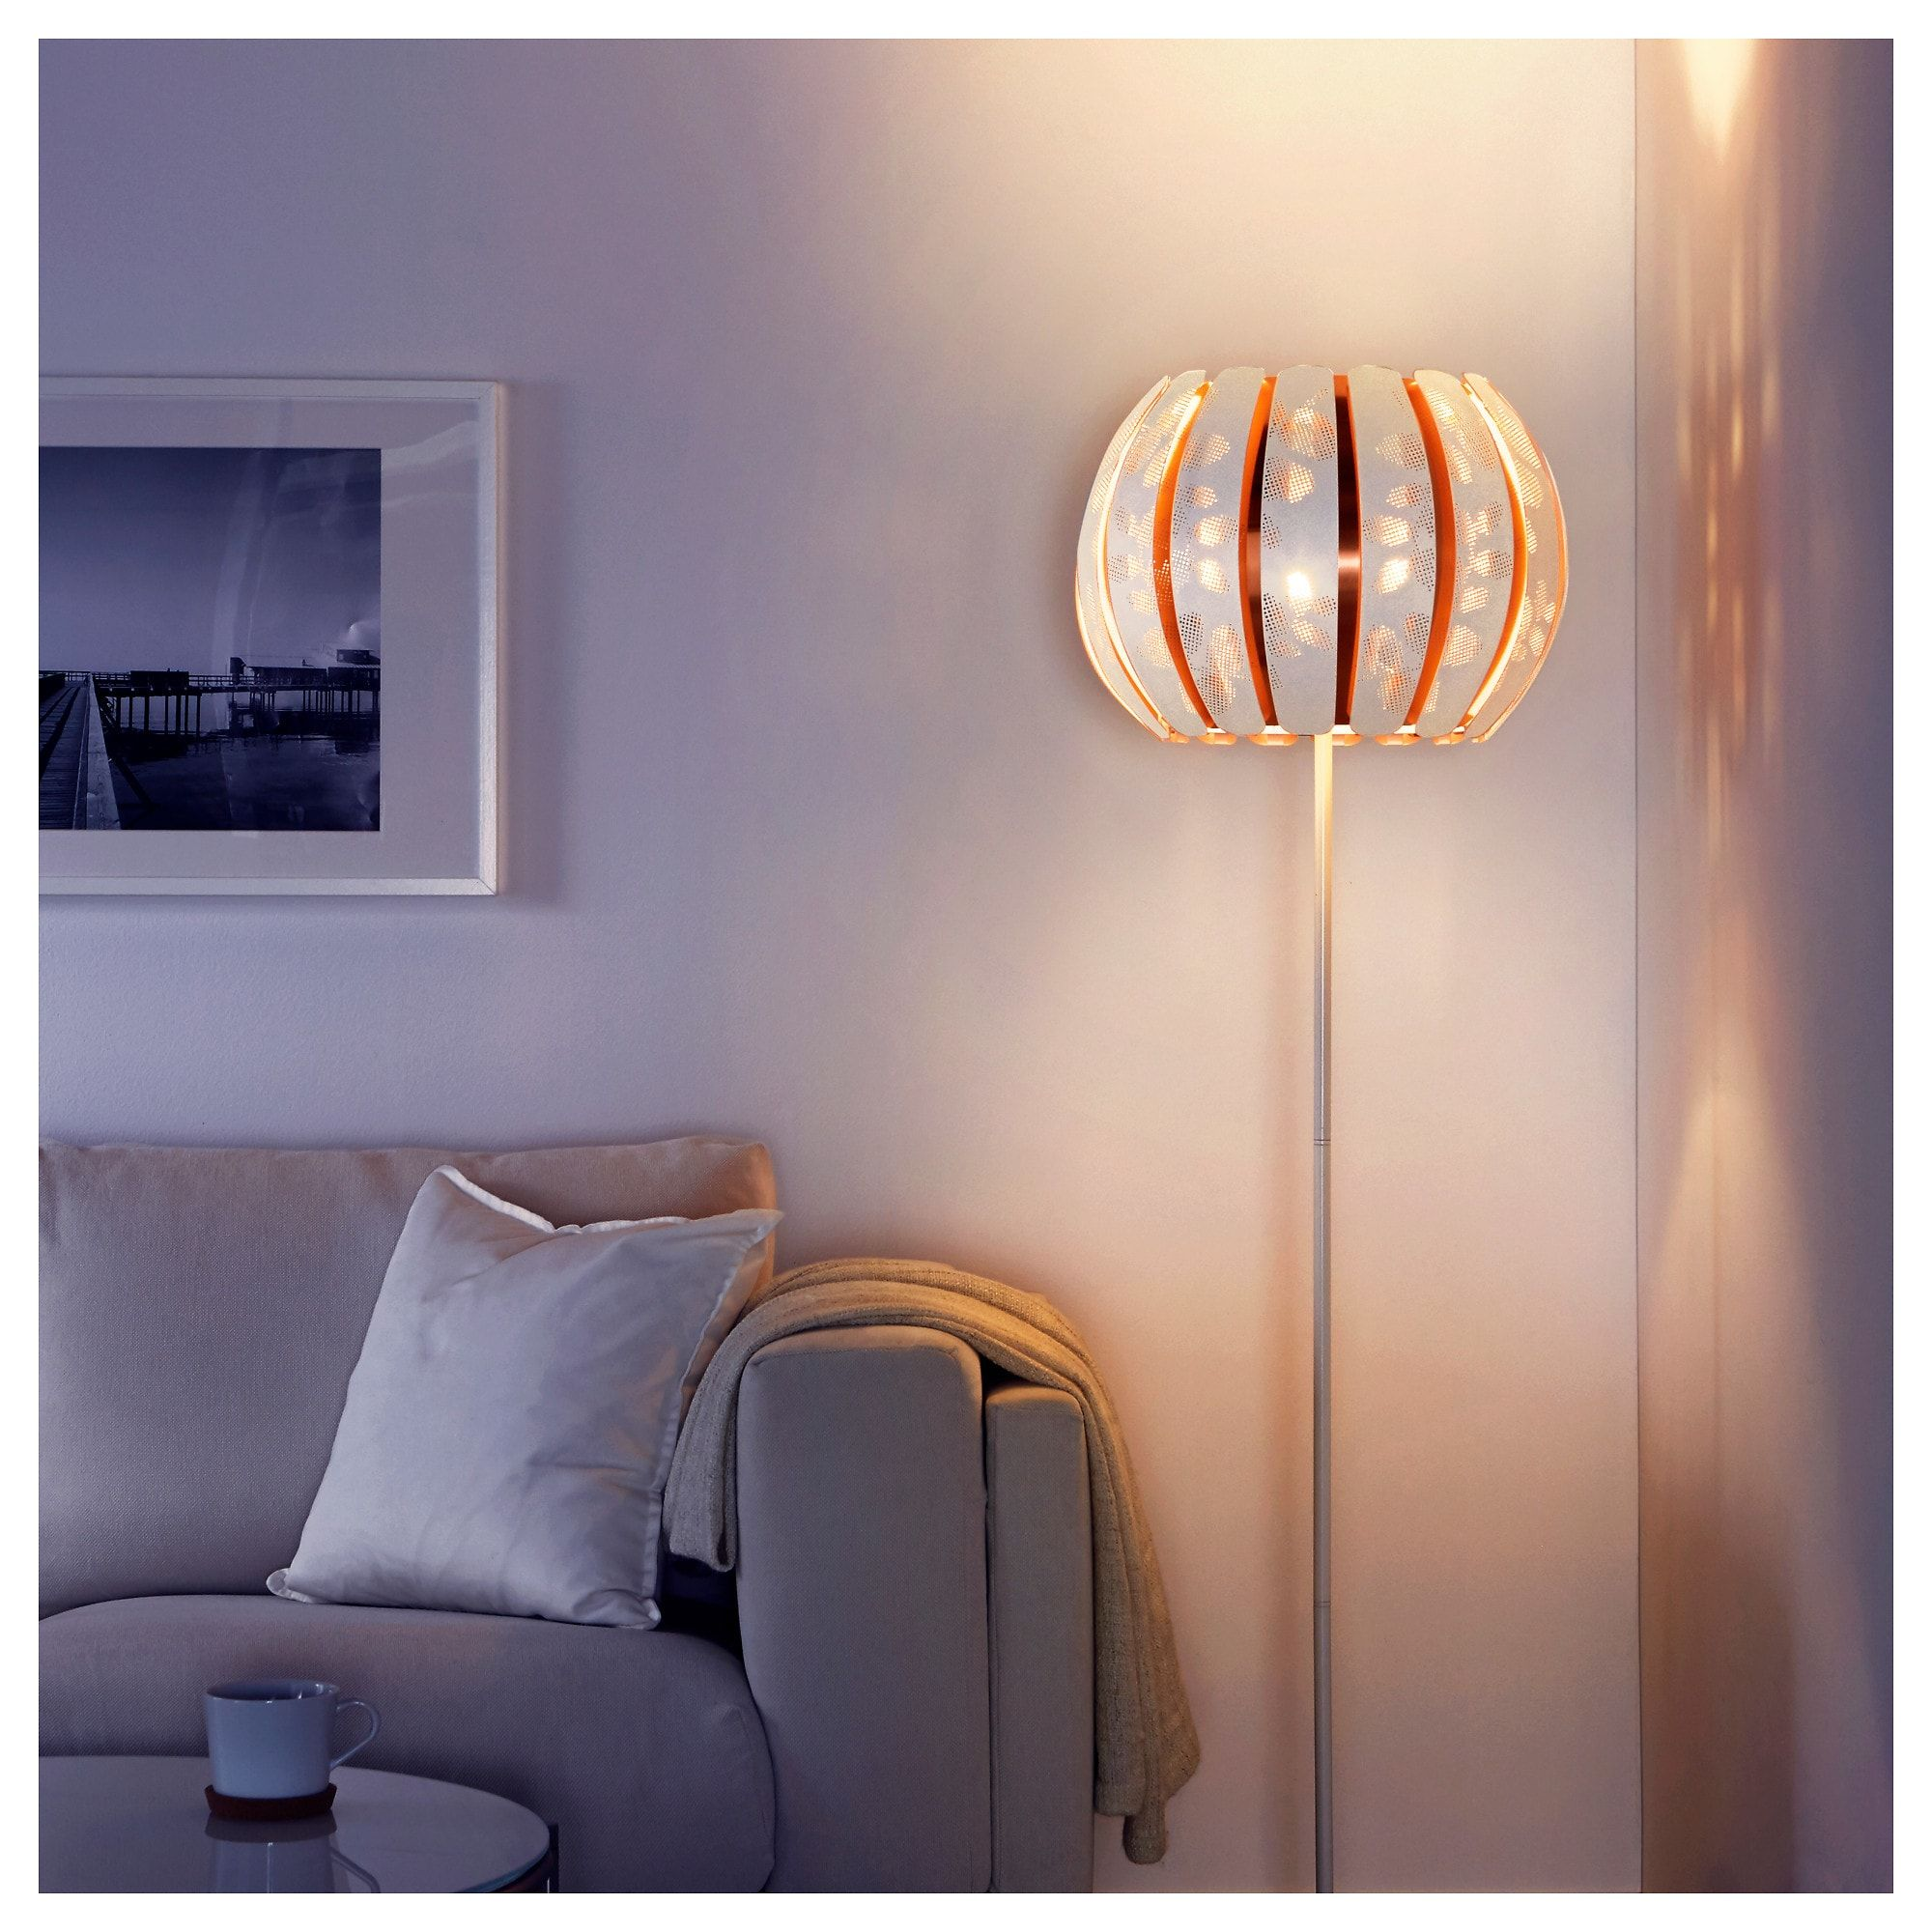 Ikea Overud White Copper Color Lamp Shade In 2019